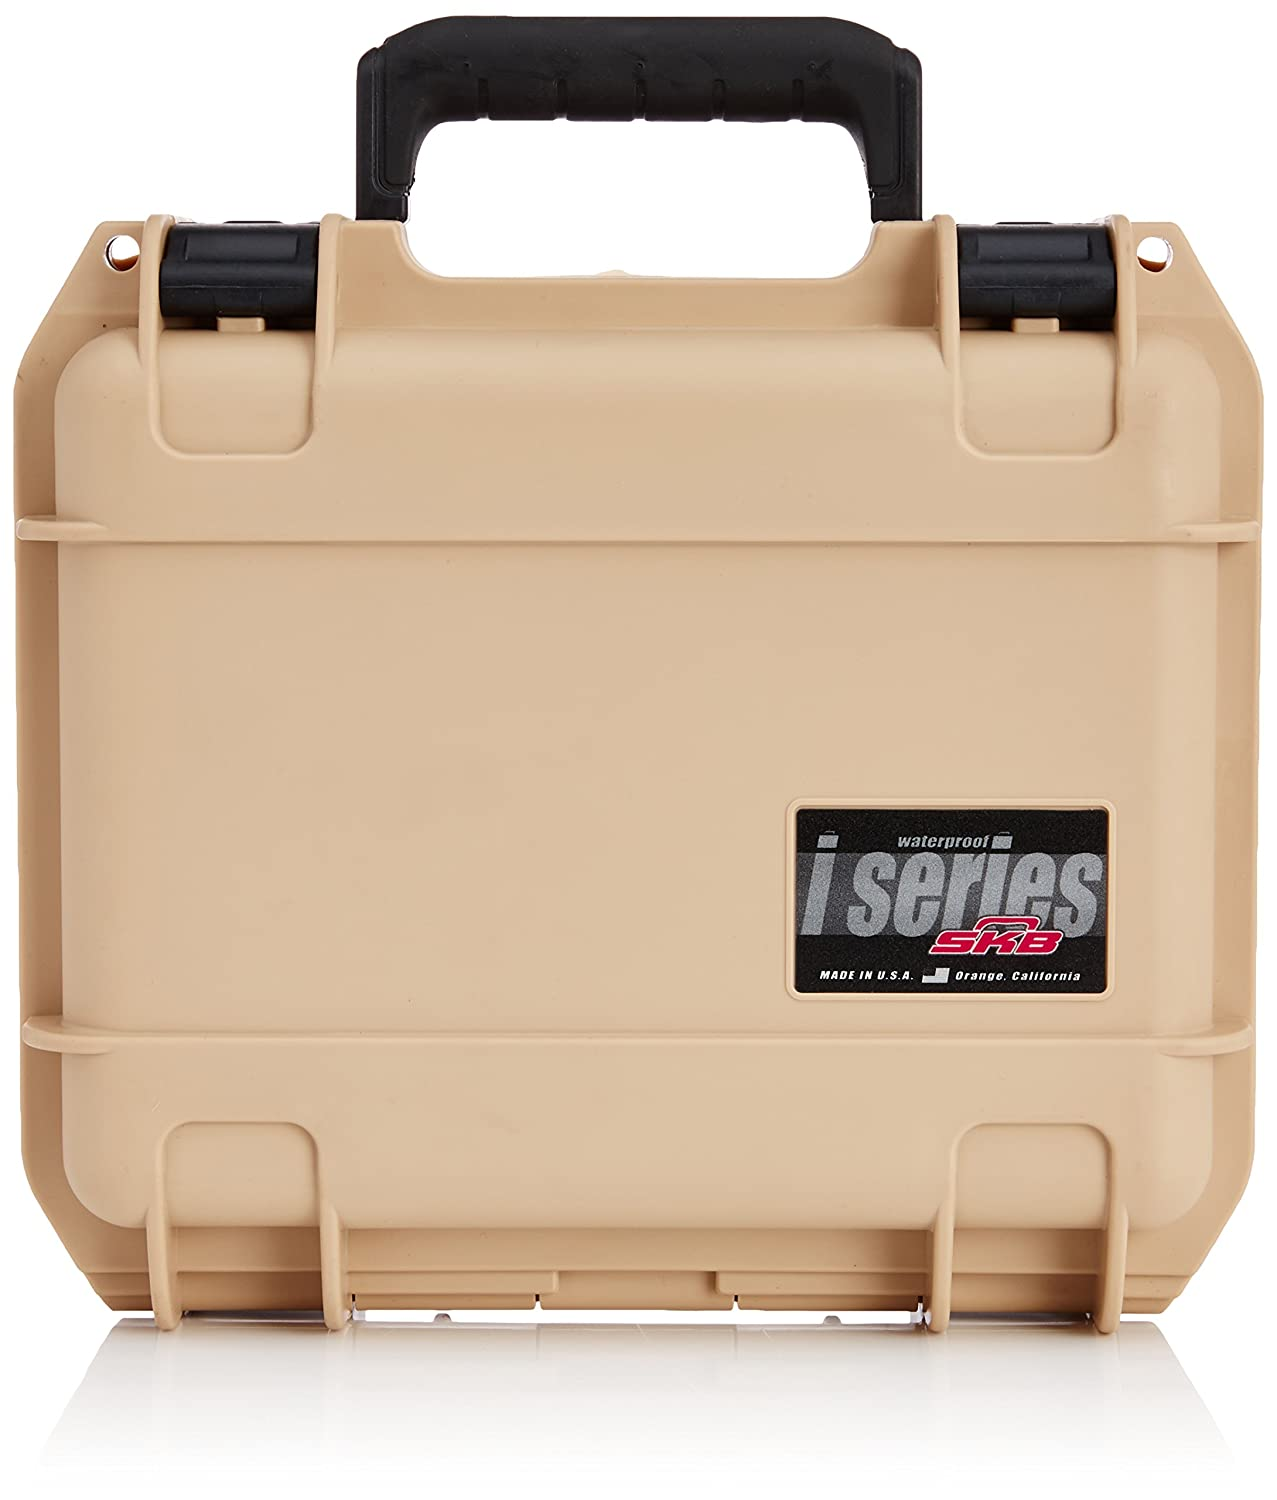 SKB Cases iSeries 0907-4 Waterproof Utility Case Tan, 10 3/4 X 9 3/4 X 4 7/8 by SKB Cases B00F534K8A